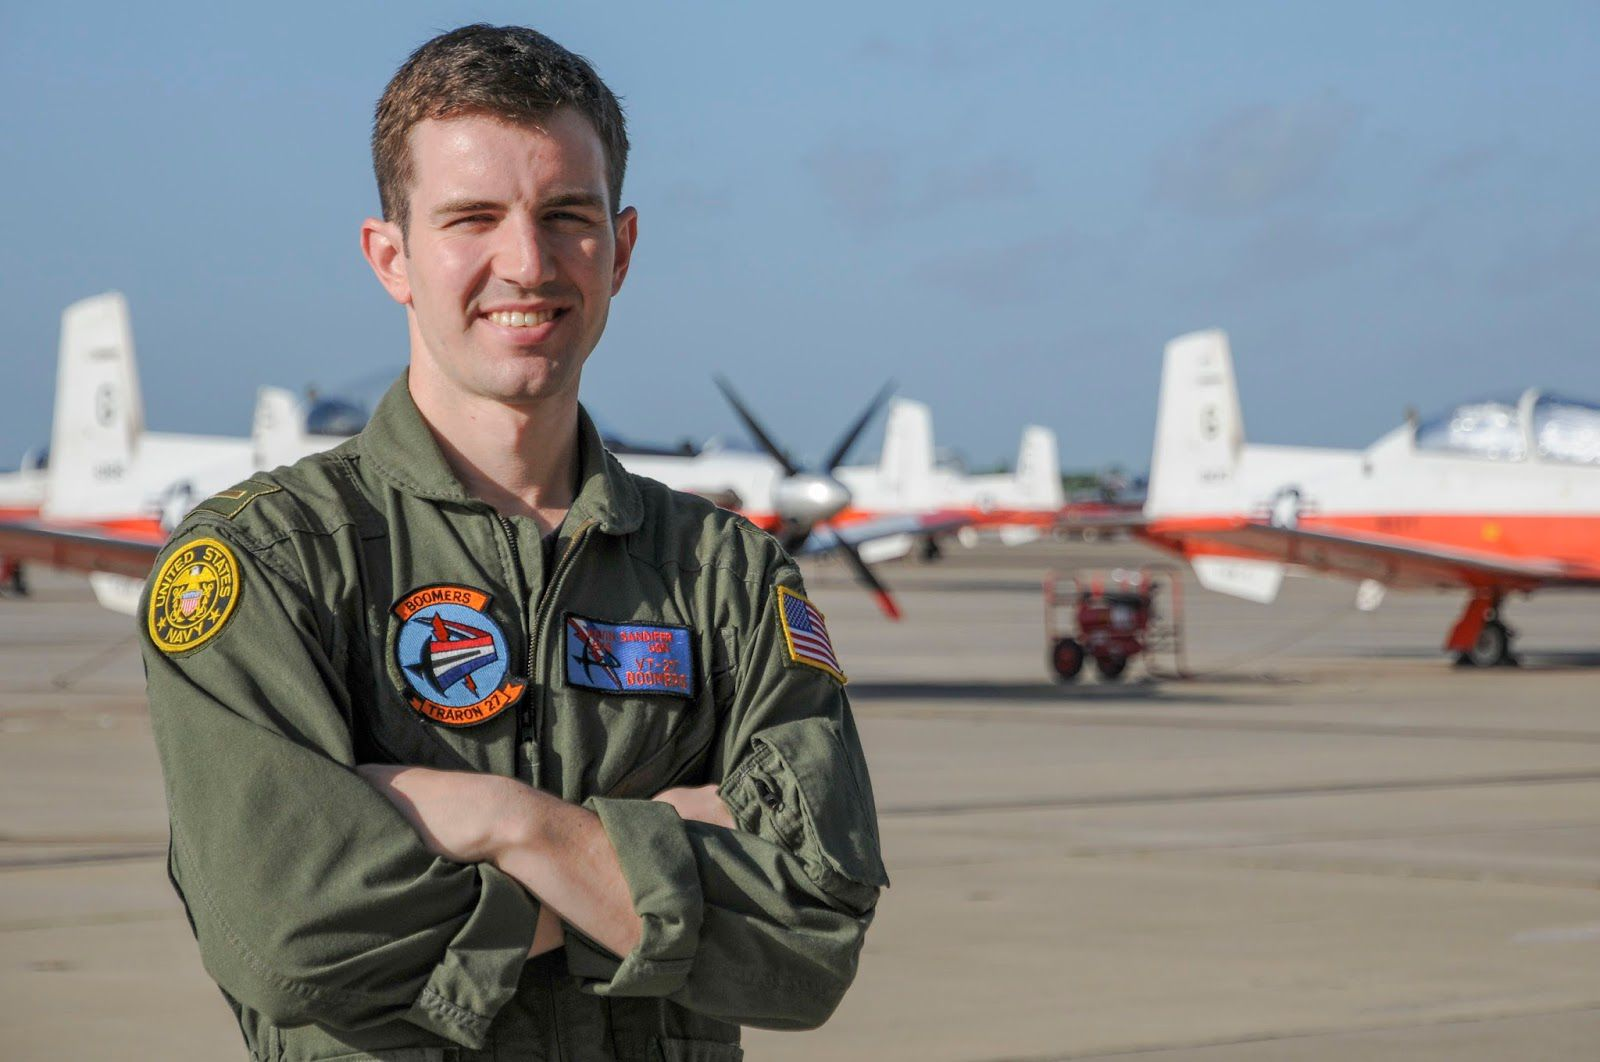 Becoming a Marine Corps Pilot